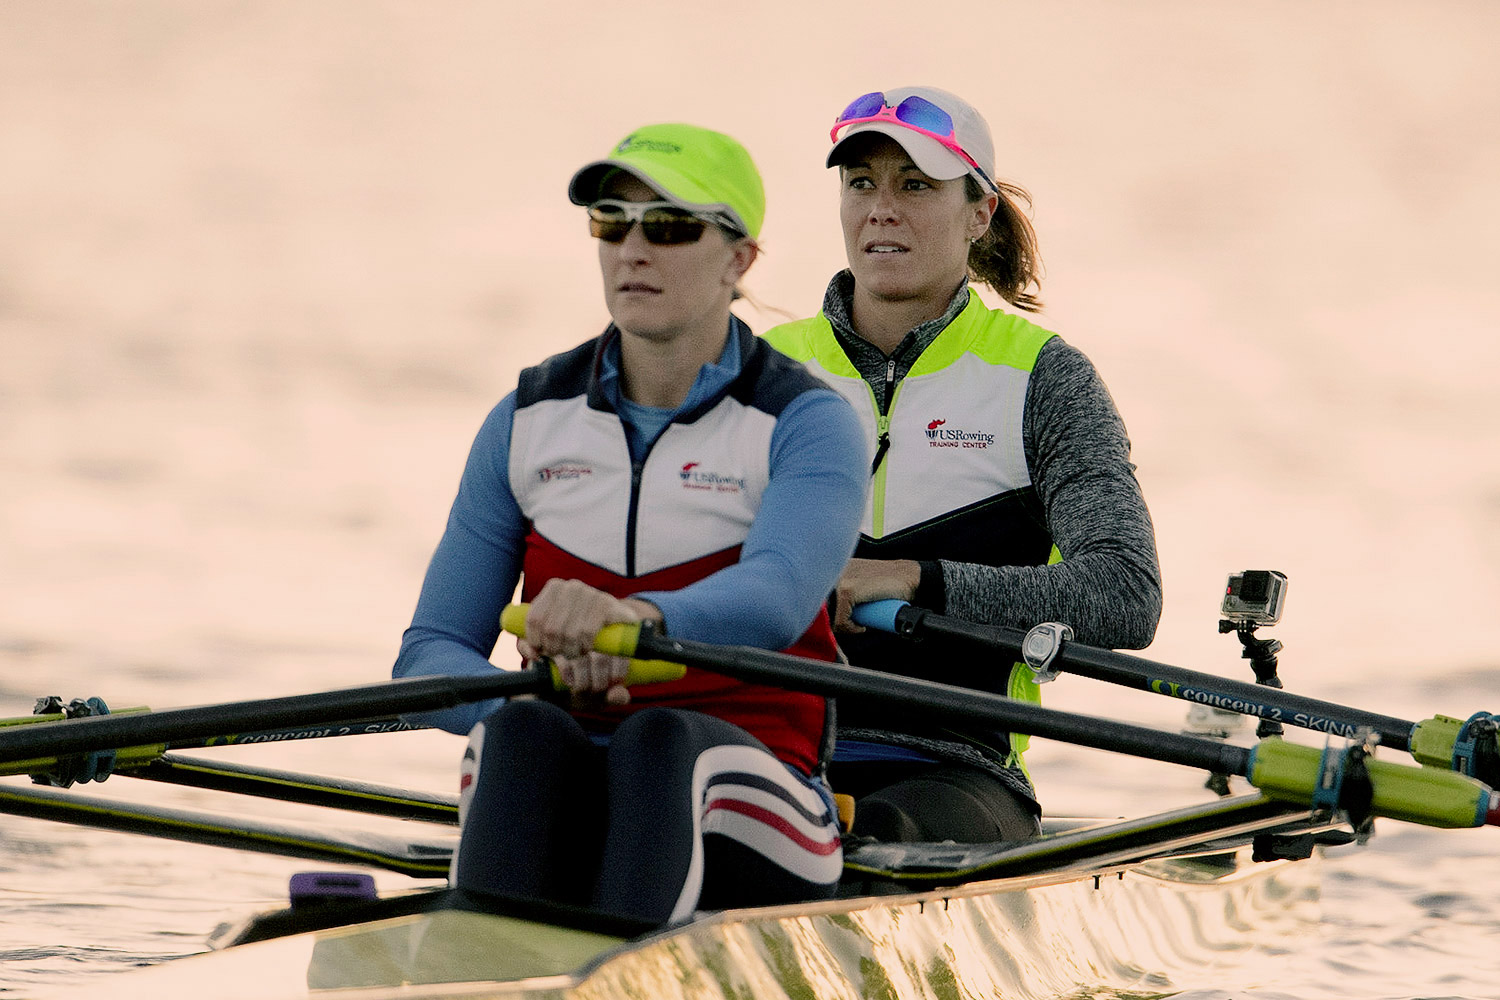 O'Leary, right, and her teammate, Ellen Tomek, qualified for Rio by winning the women's double sculls event at the U.S. Olympic Trials. (Photo by Ed Moran/US Rowing)